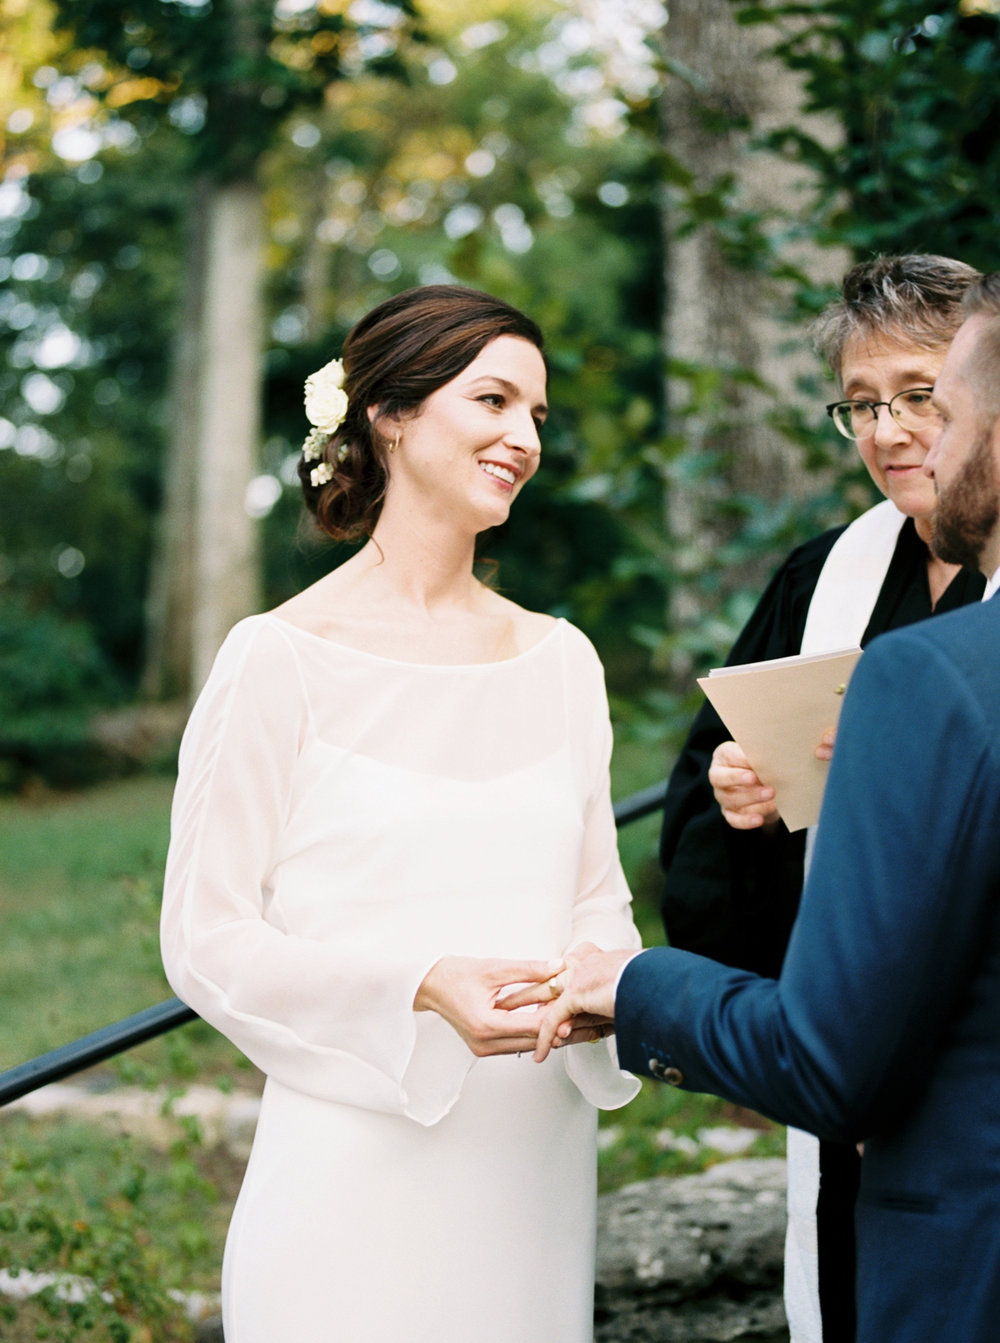 web ellen + paul cheekwood film documentary wedding photographers ©2016abigailbobophotography-63.jpg